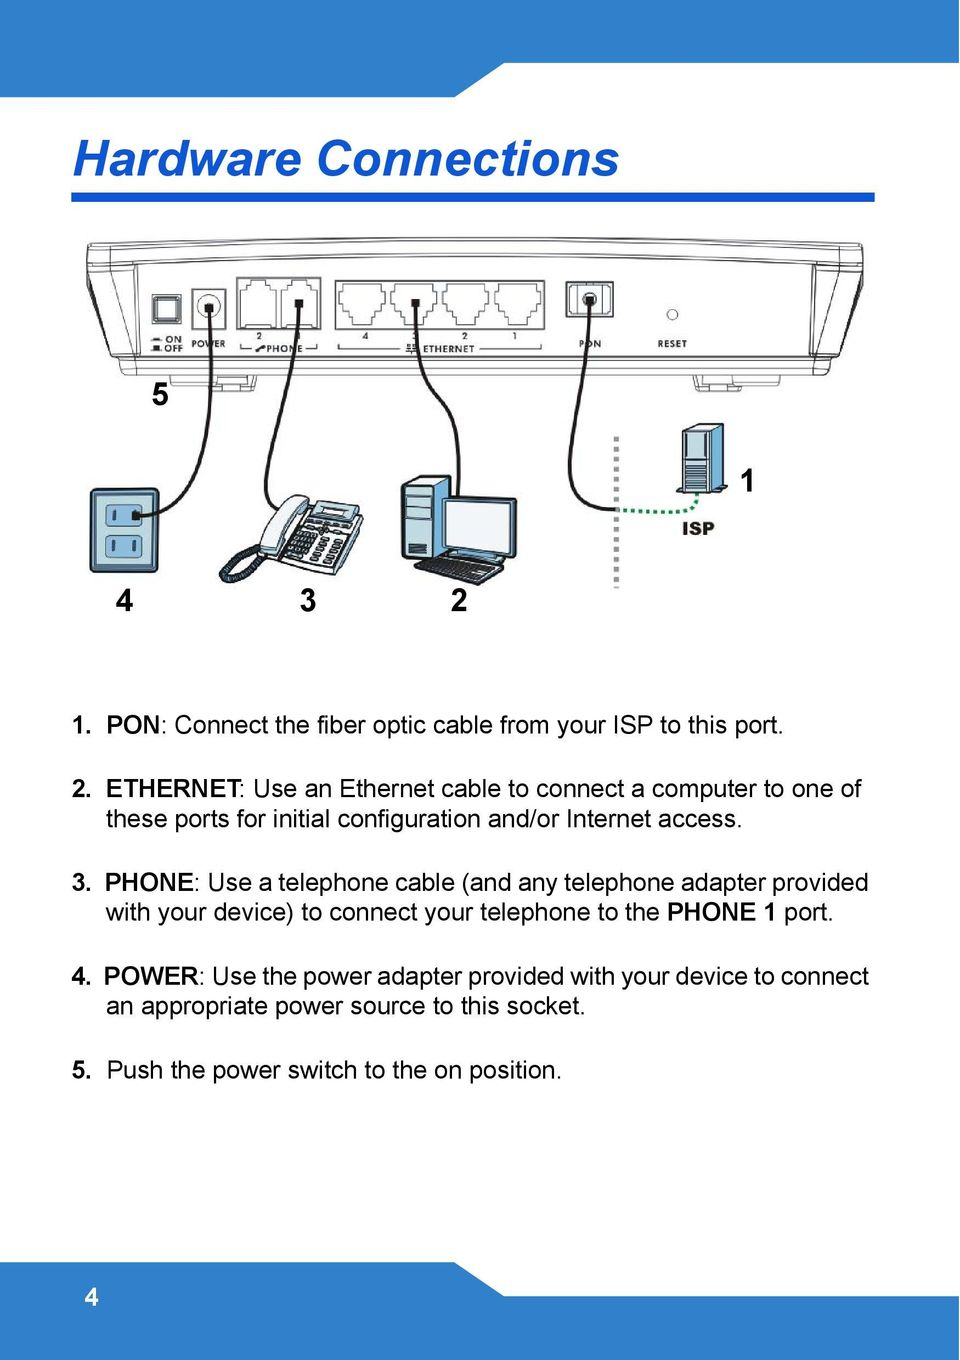 ETHERNET: Use an Ethernet cable to connect a computer to one of these ports for initial configuration and/or Internet access. 3.